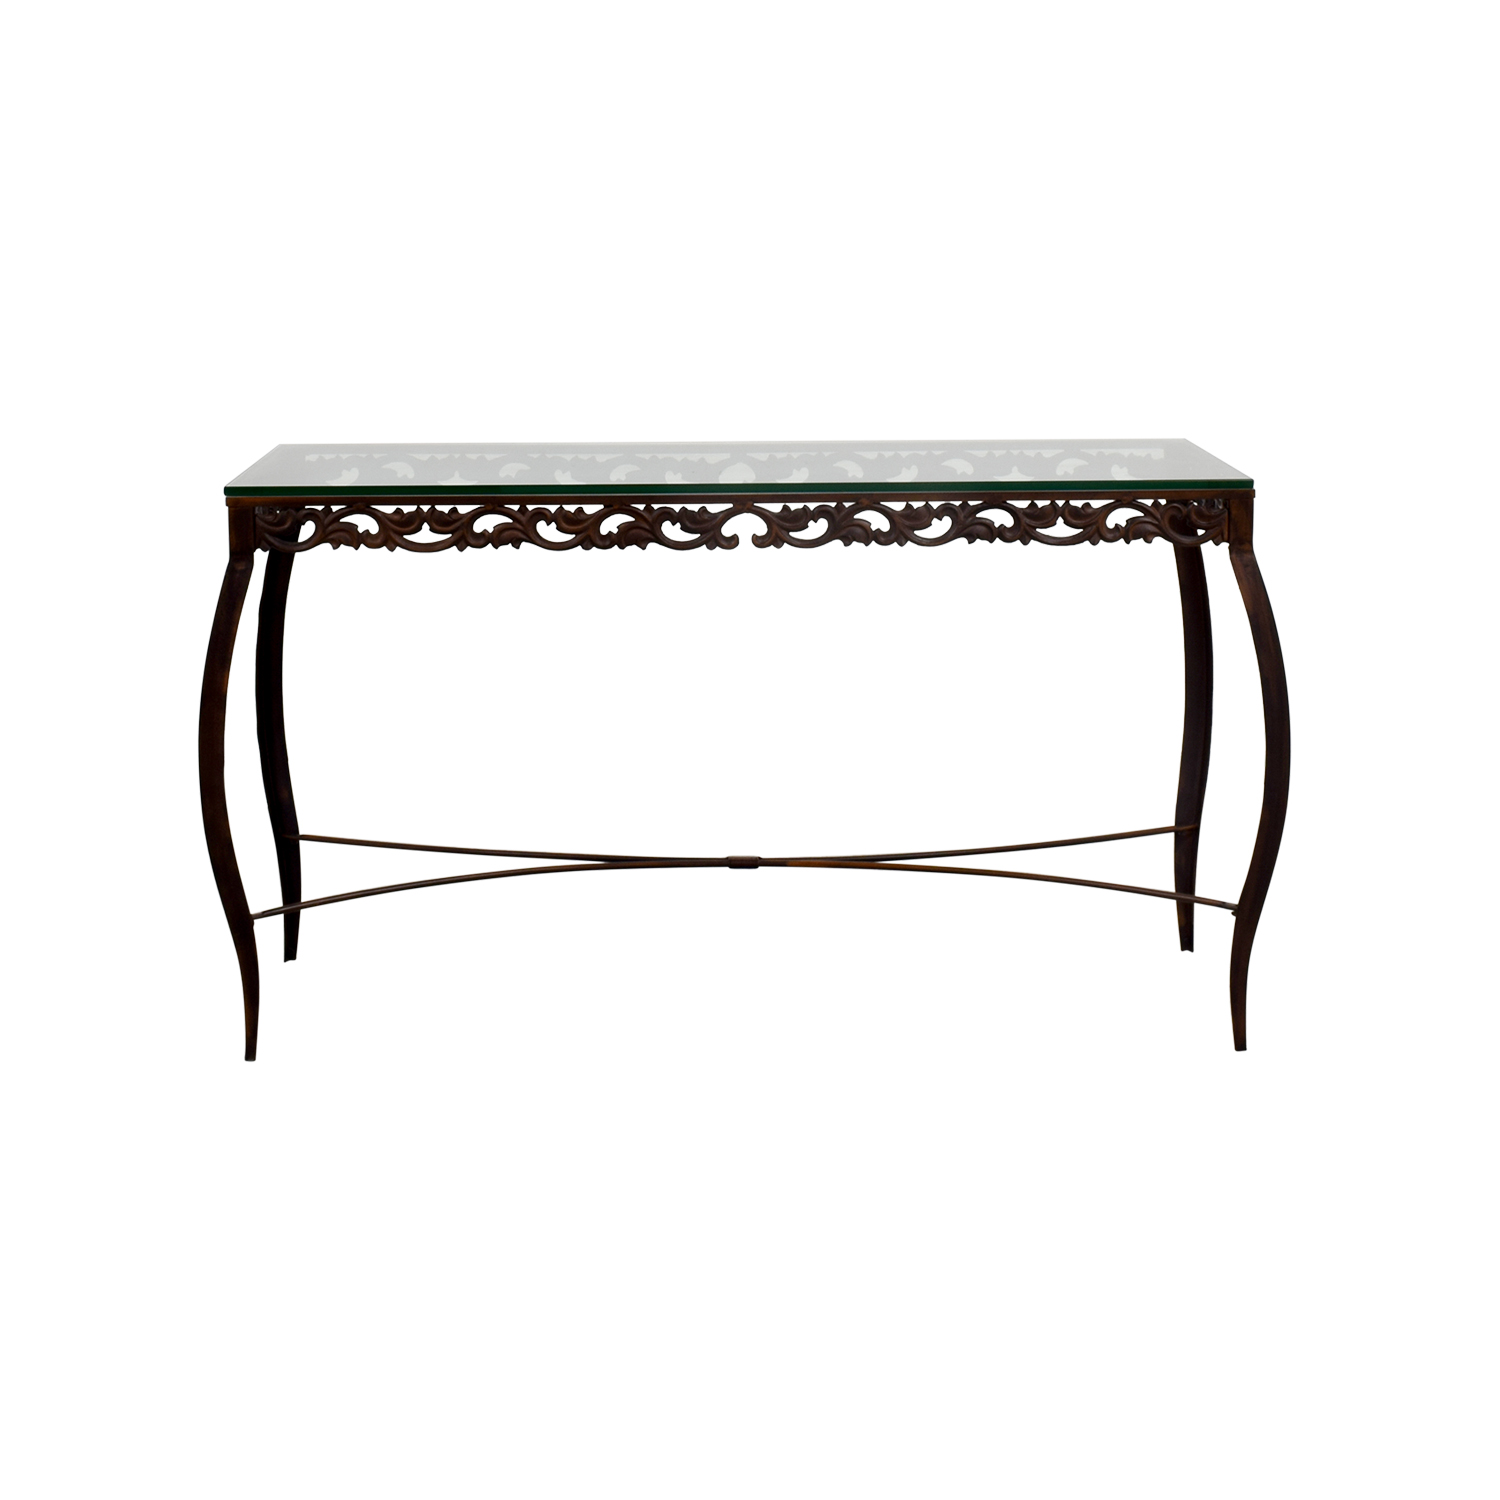 off pier imports glass console table tables accent small brass coffee west elm coupon code tiffany dragonfly lamp circular side half round fruit cocktail recipe skirts decorator